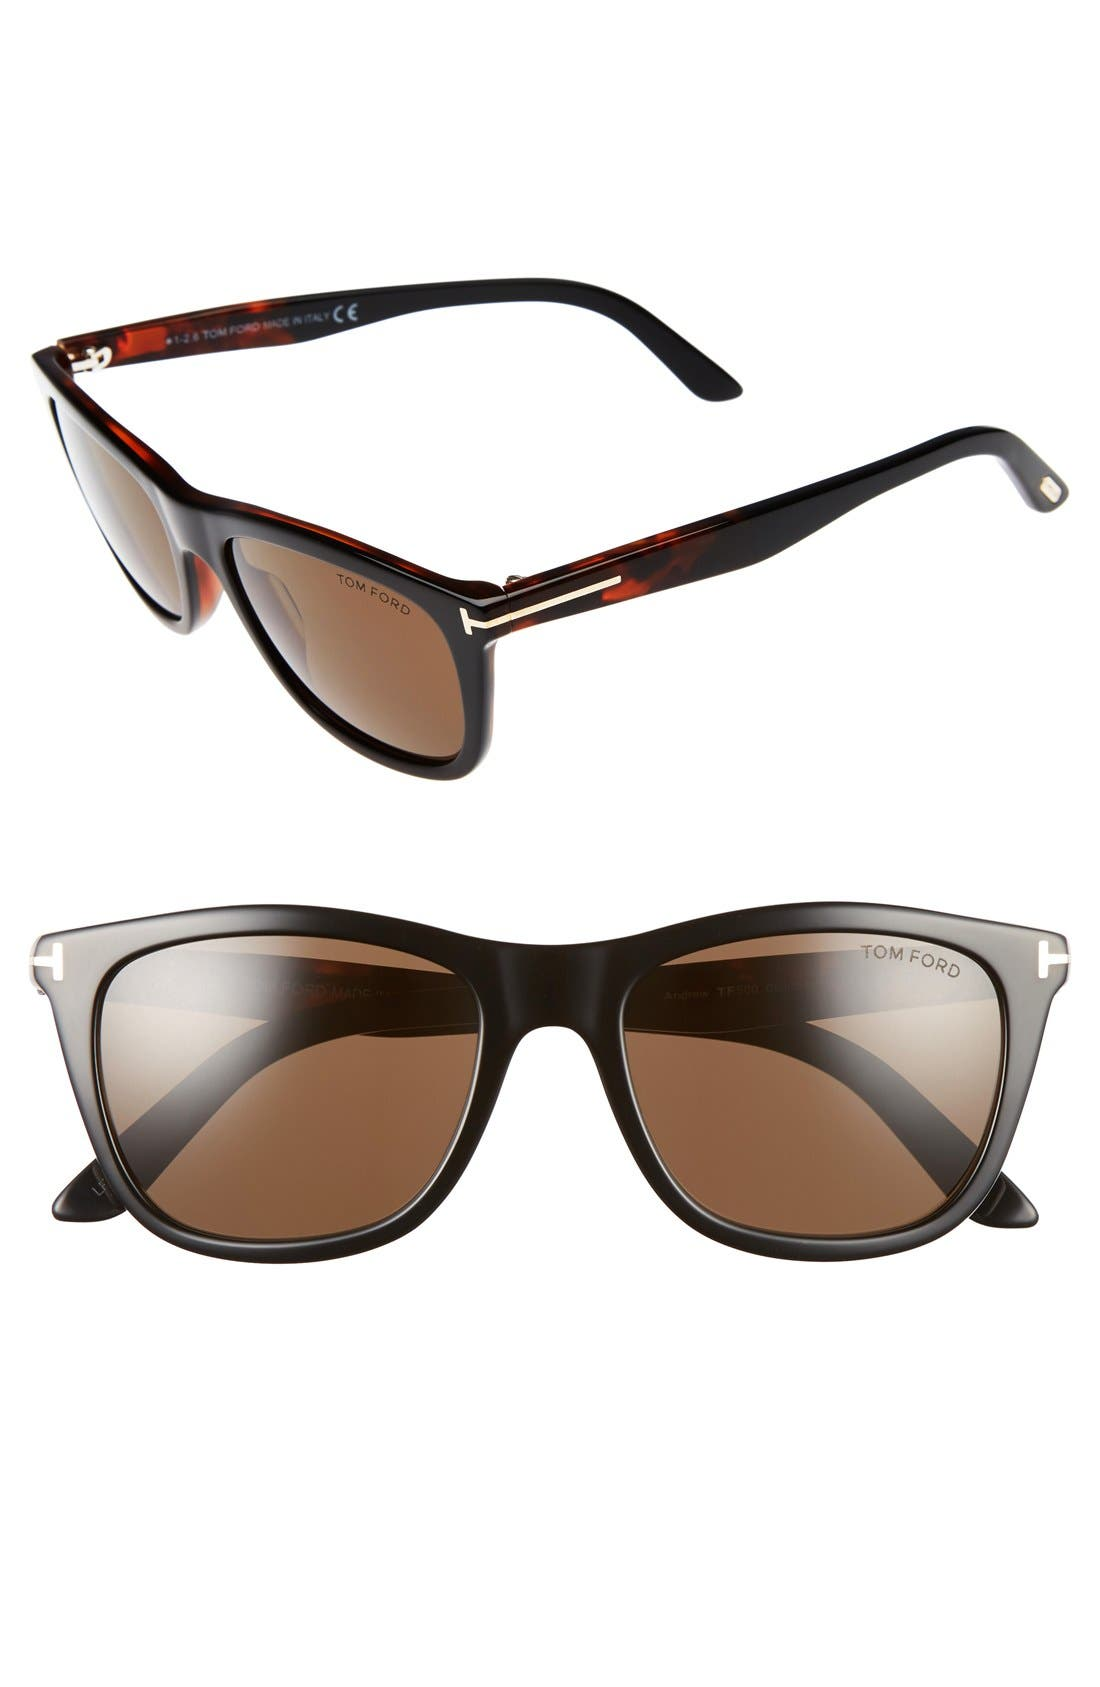 Main Image - Tom Ford Andrew 54mm Sunglasses